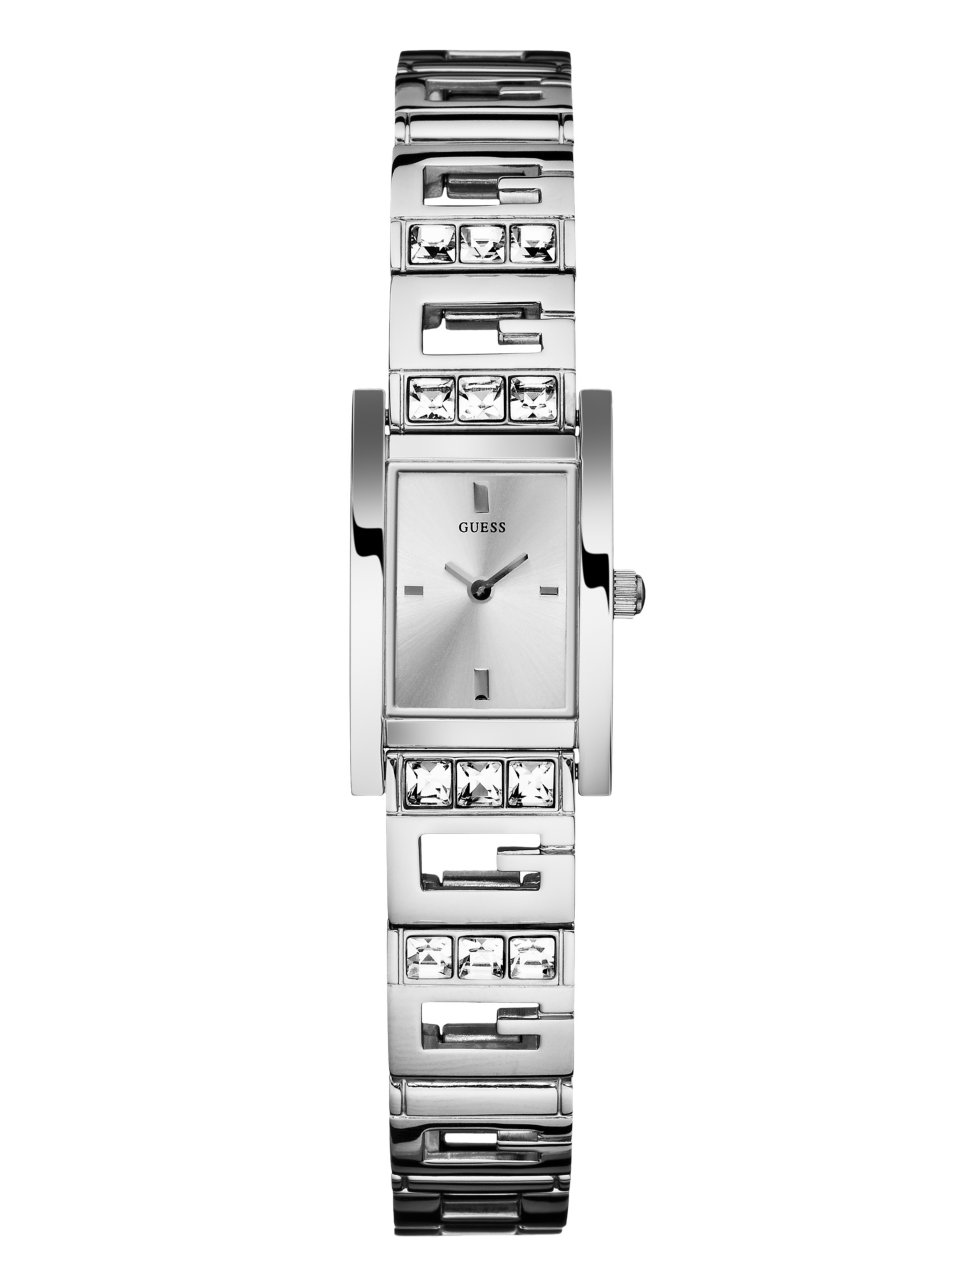 GUESS G-Iconic Sophistication Watch